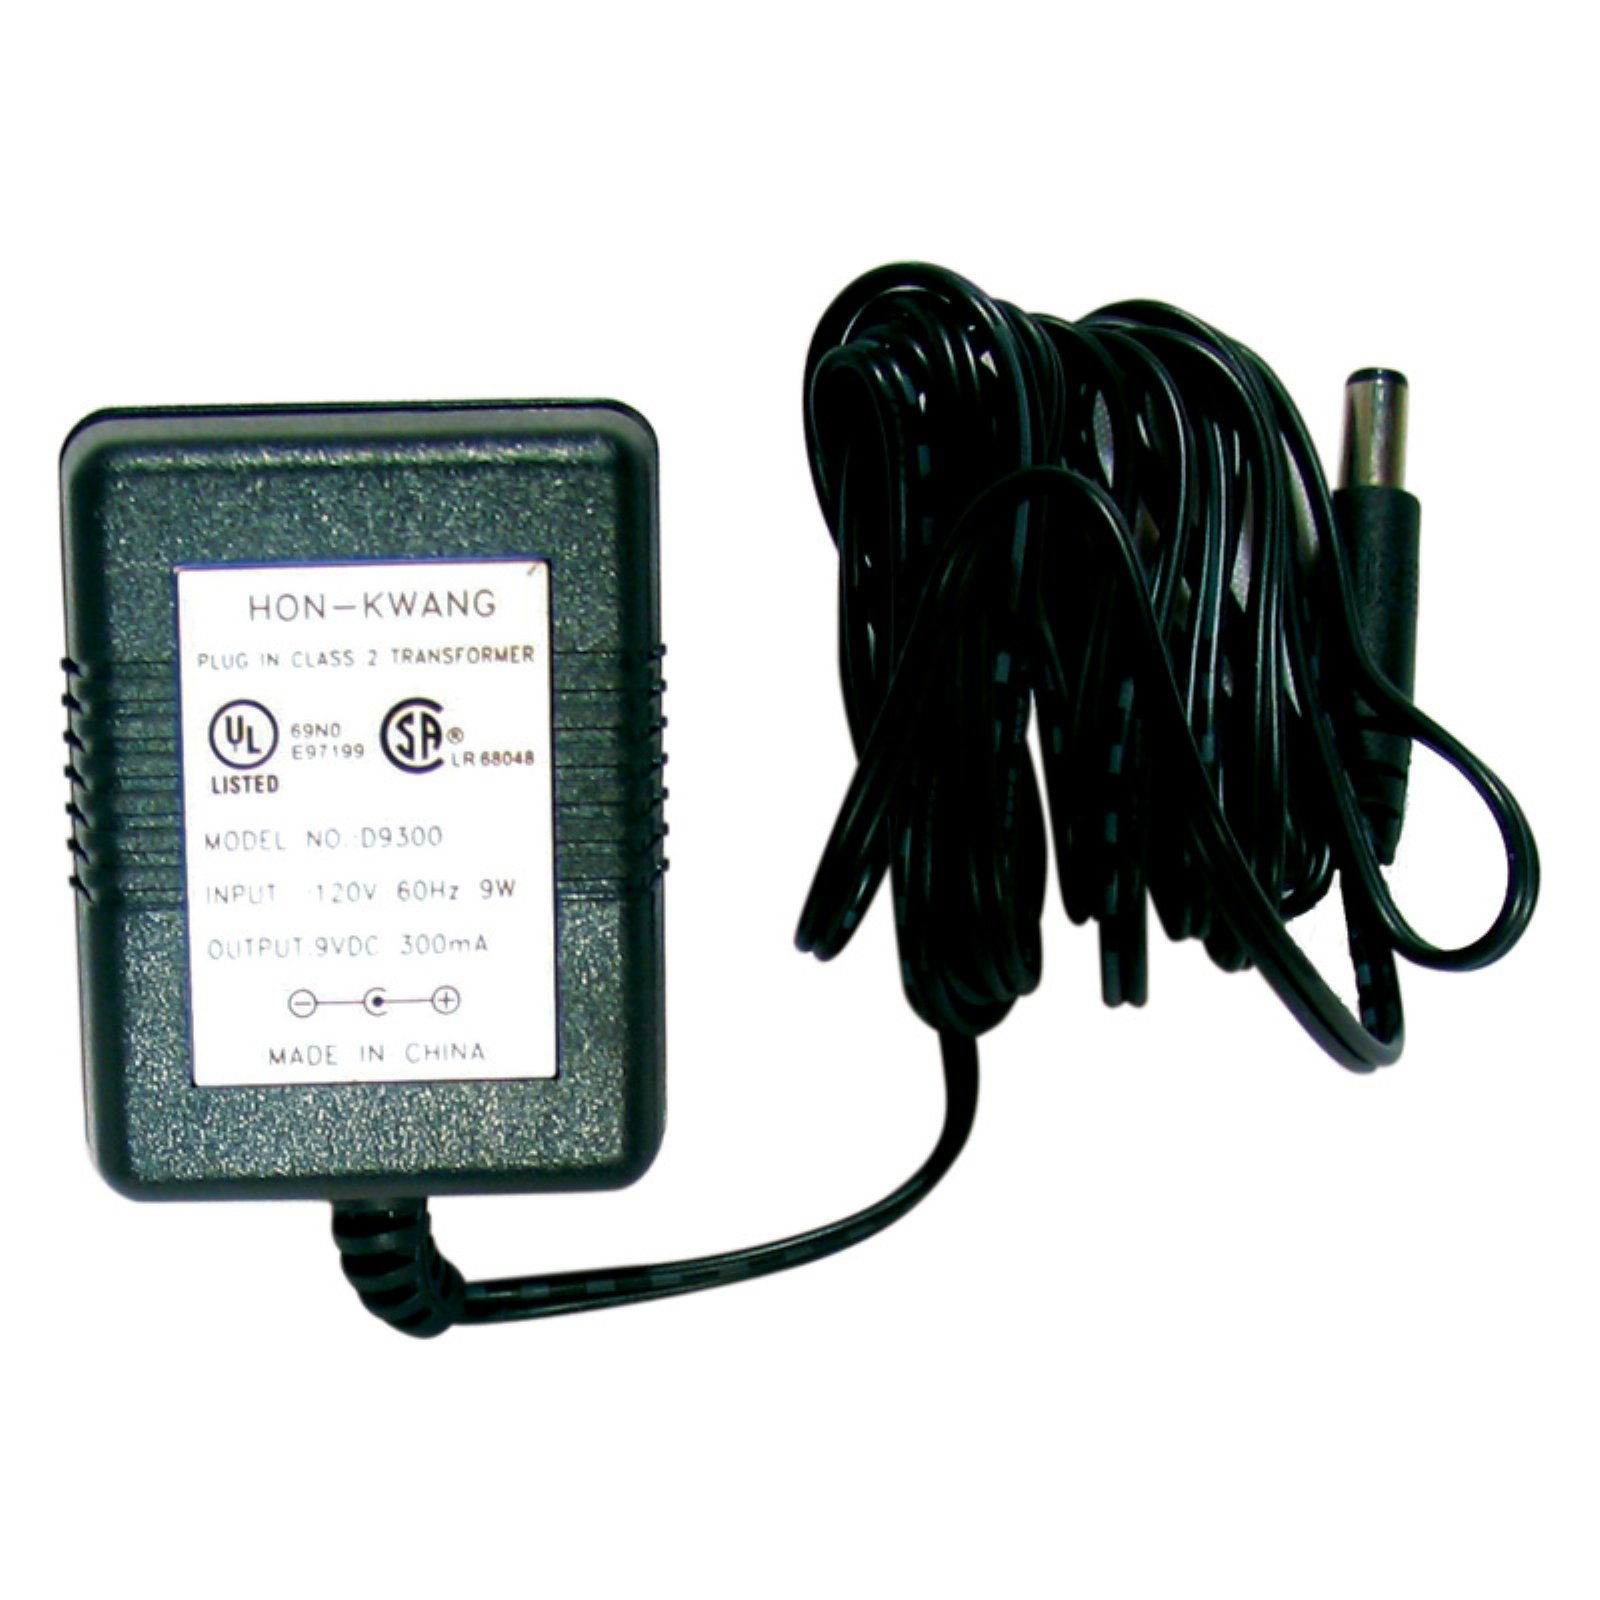 Adapter 9 Volt DC 300mA for Viper 787 Electronic Dart Board by GLD Products Manufacturing